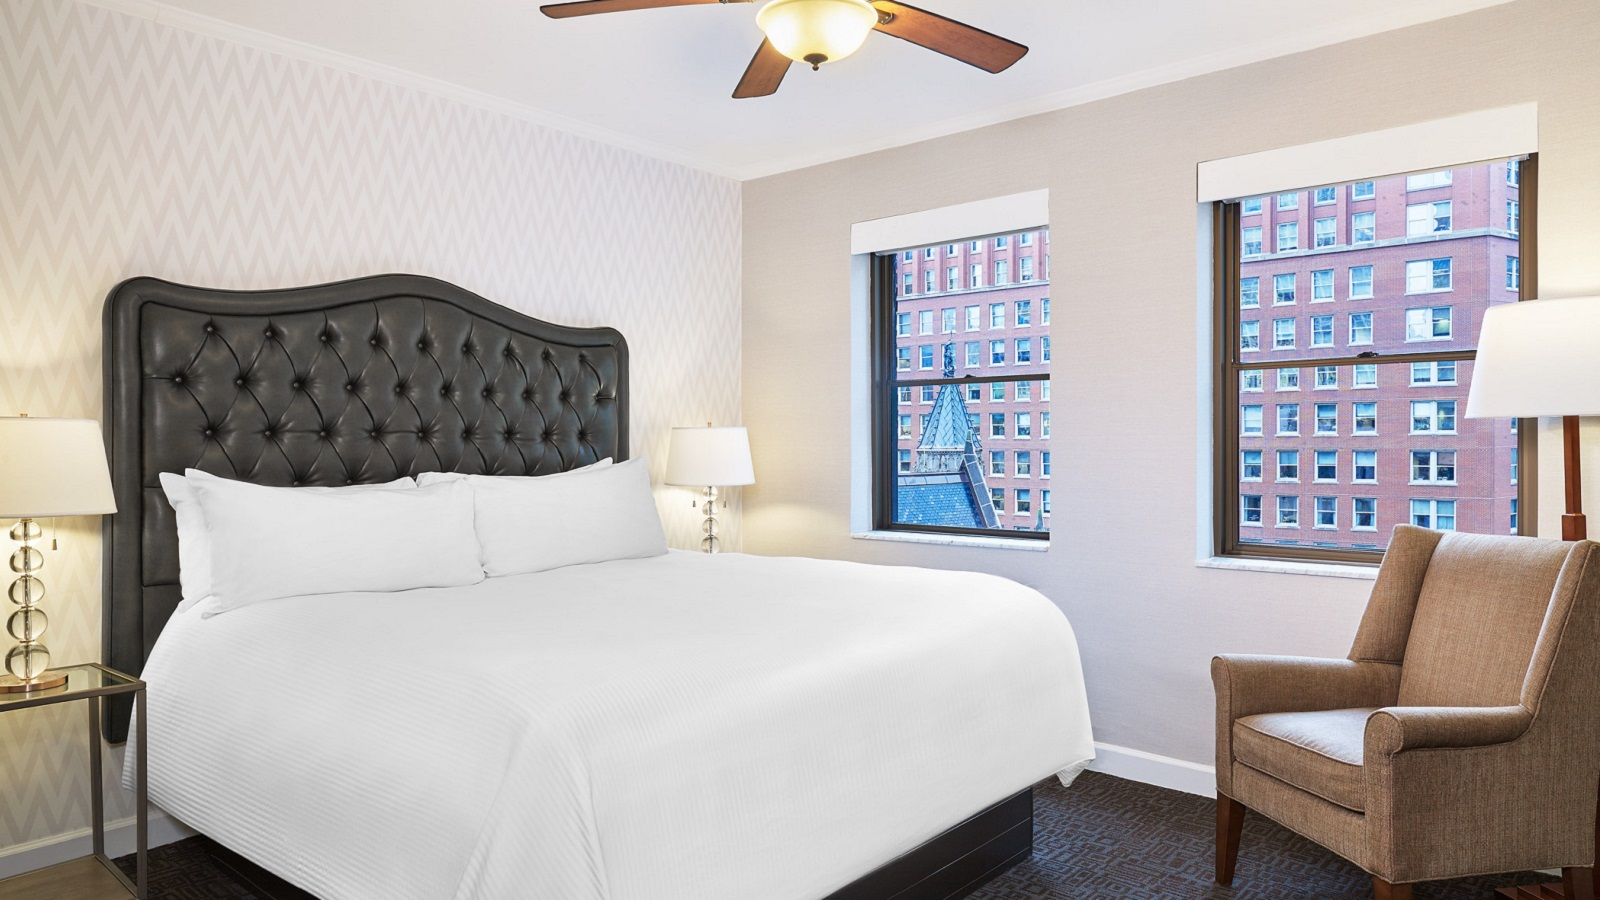 Tremont Chicago Hotel - Traditional Queen Room